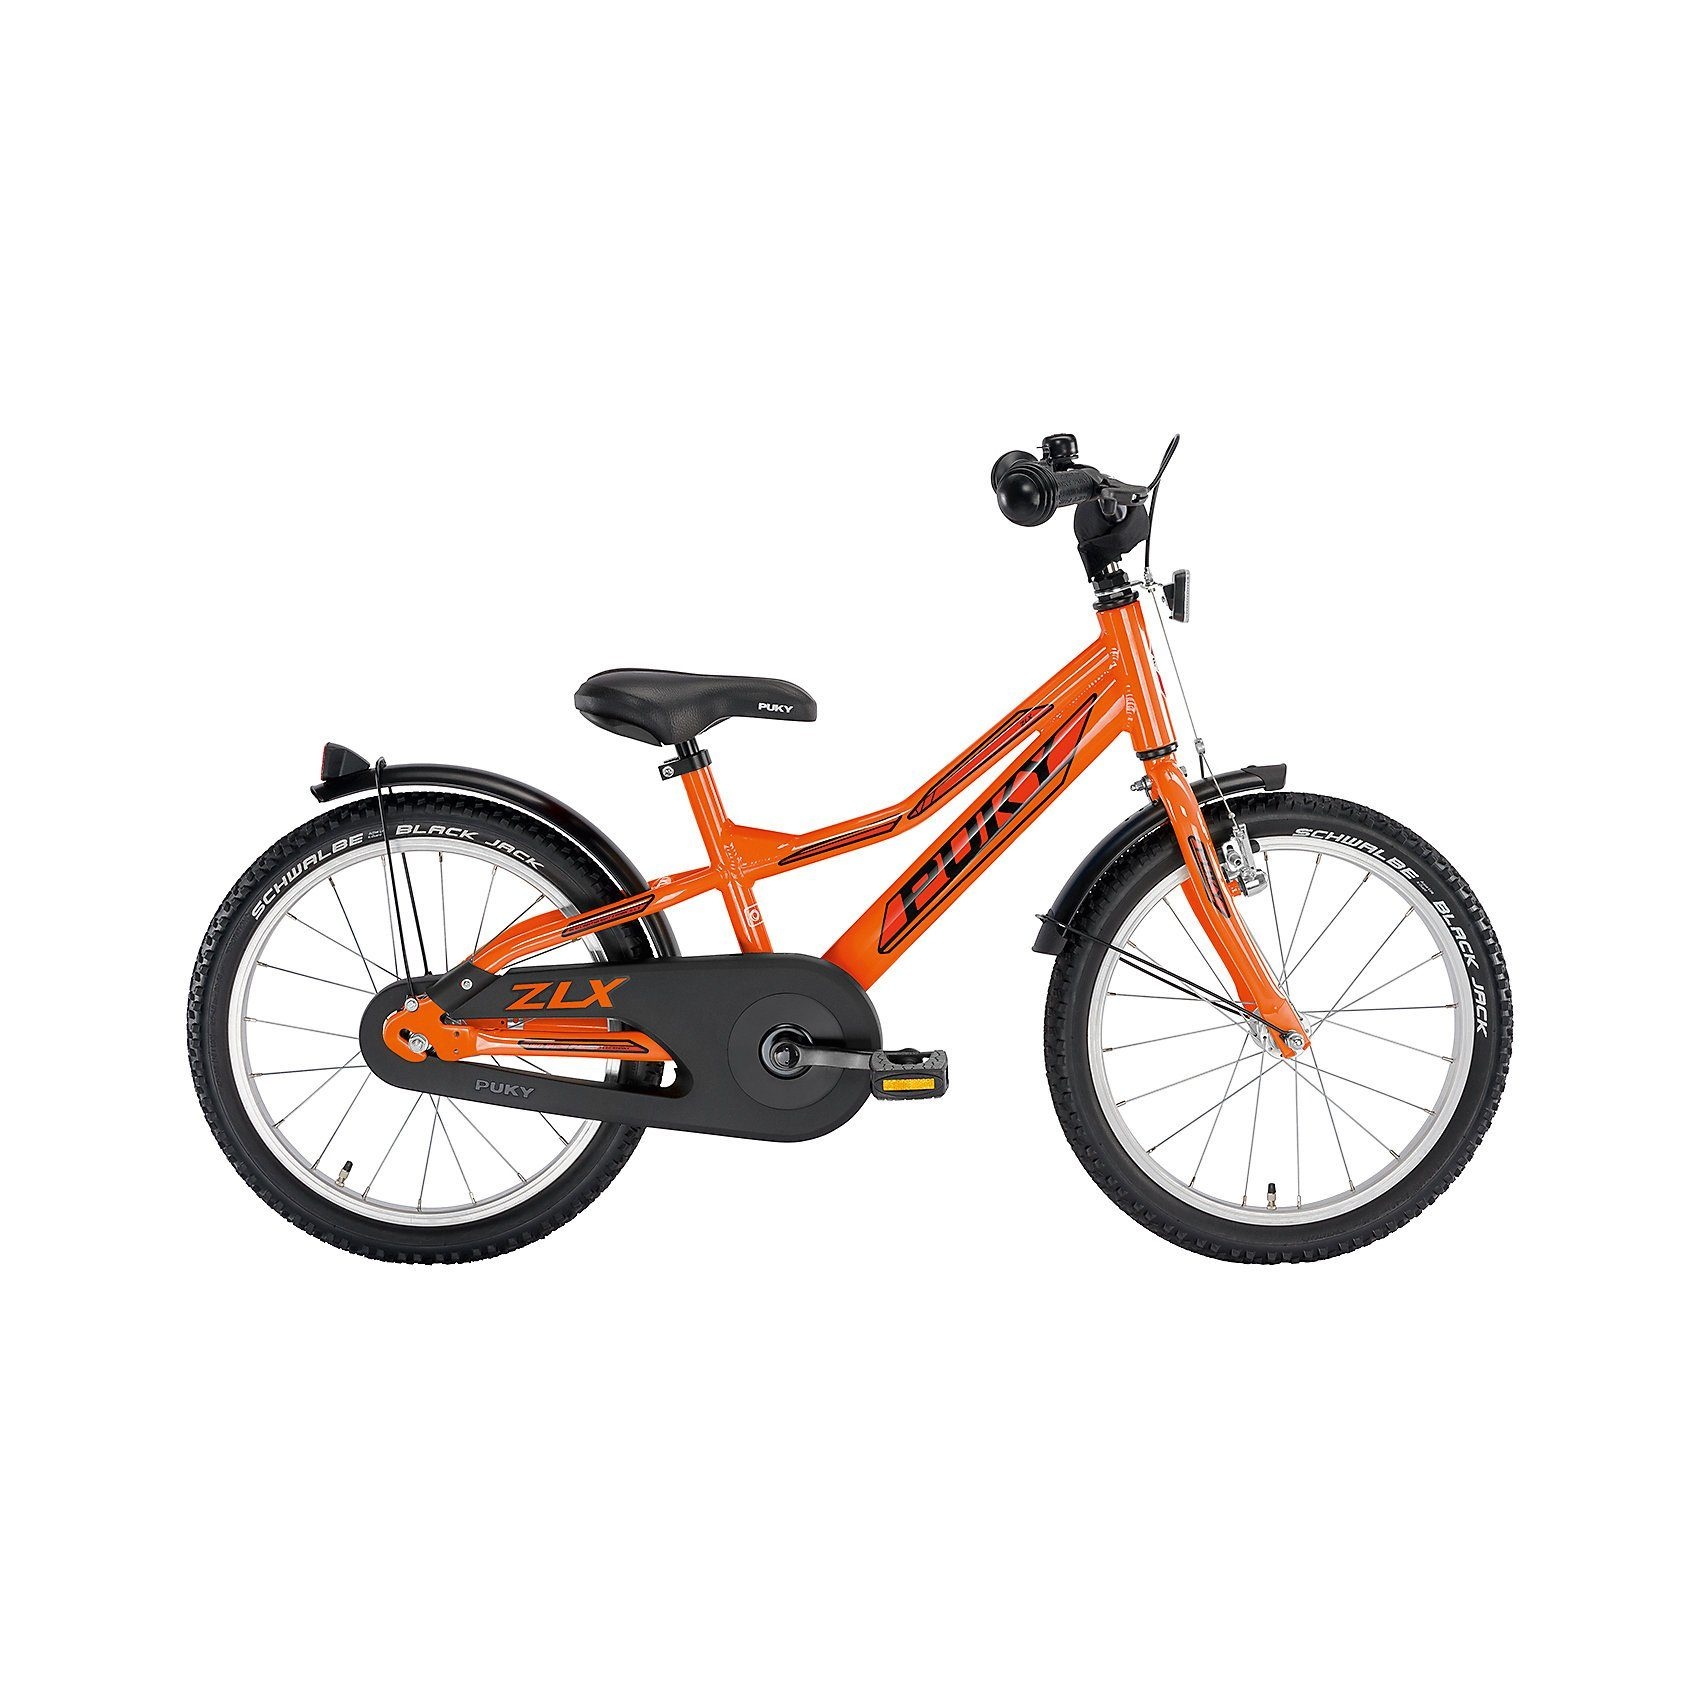 Puky Kinderfahrrad ZLX 18-1 Alu racing, orange